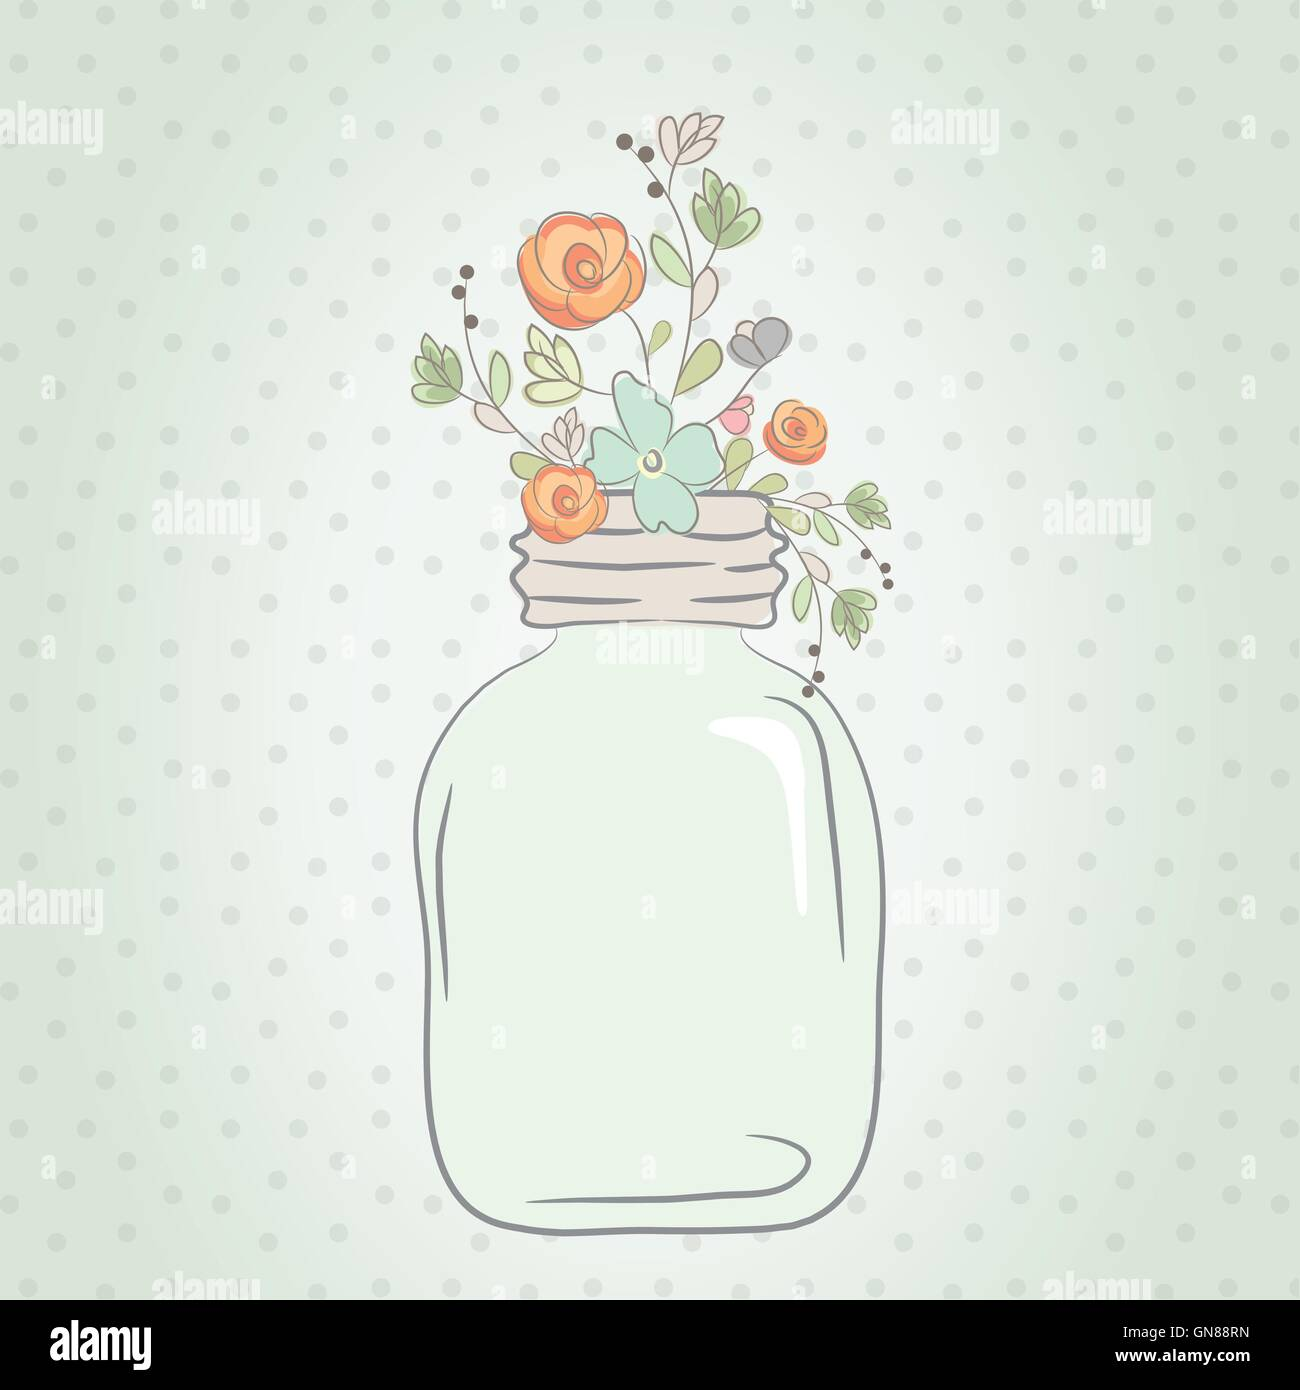 Cute bouquet of wedding flowers in a glass jar. Stock Vector